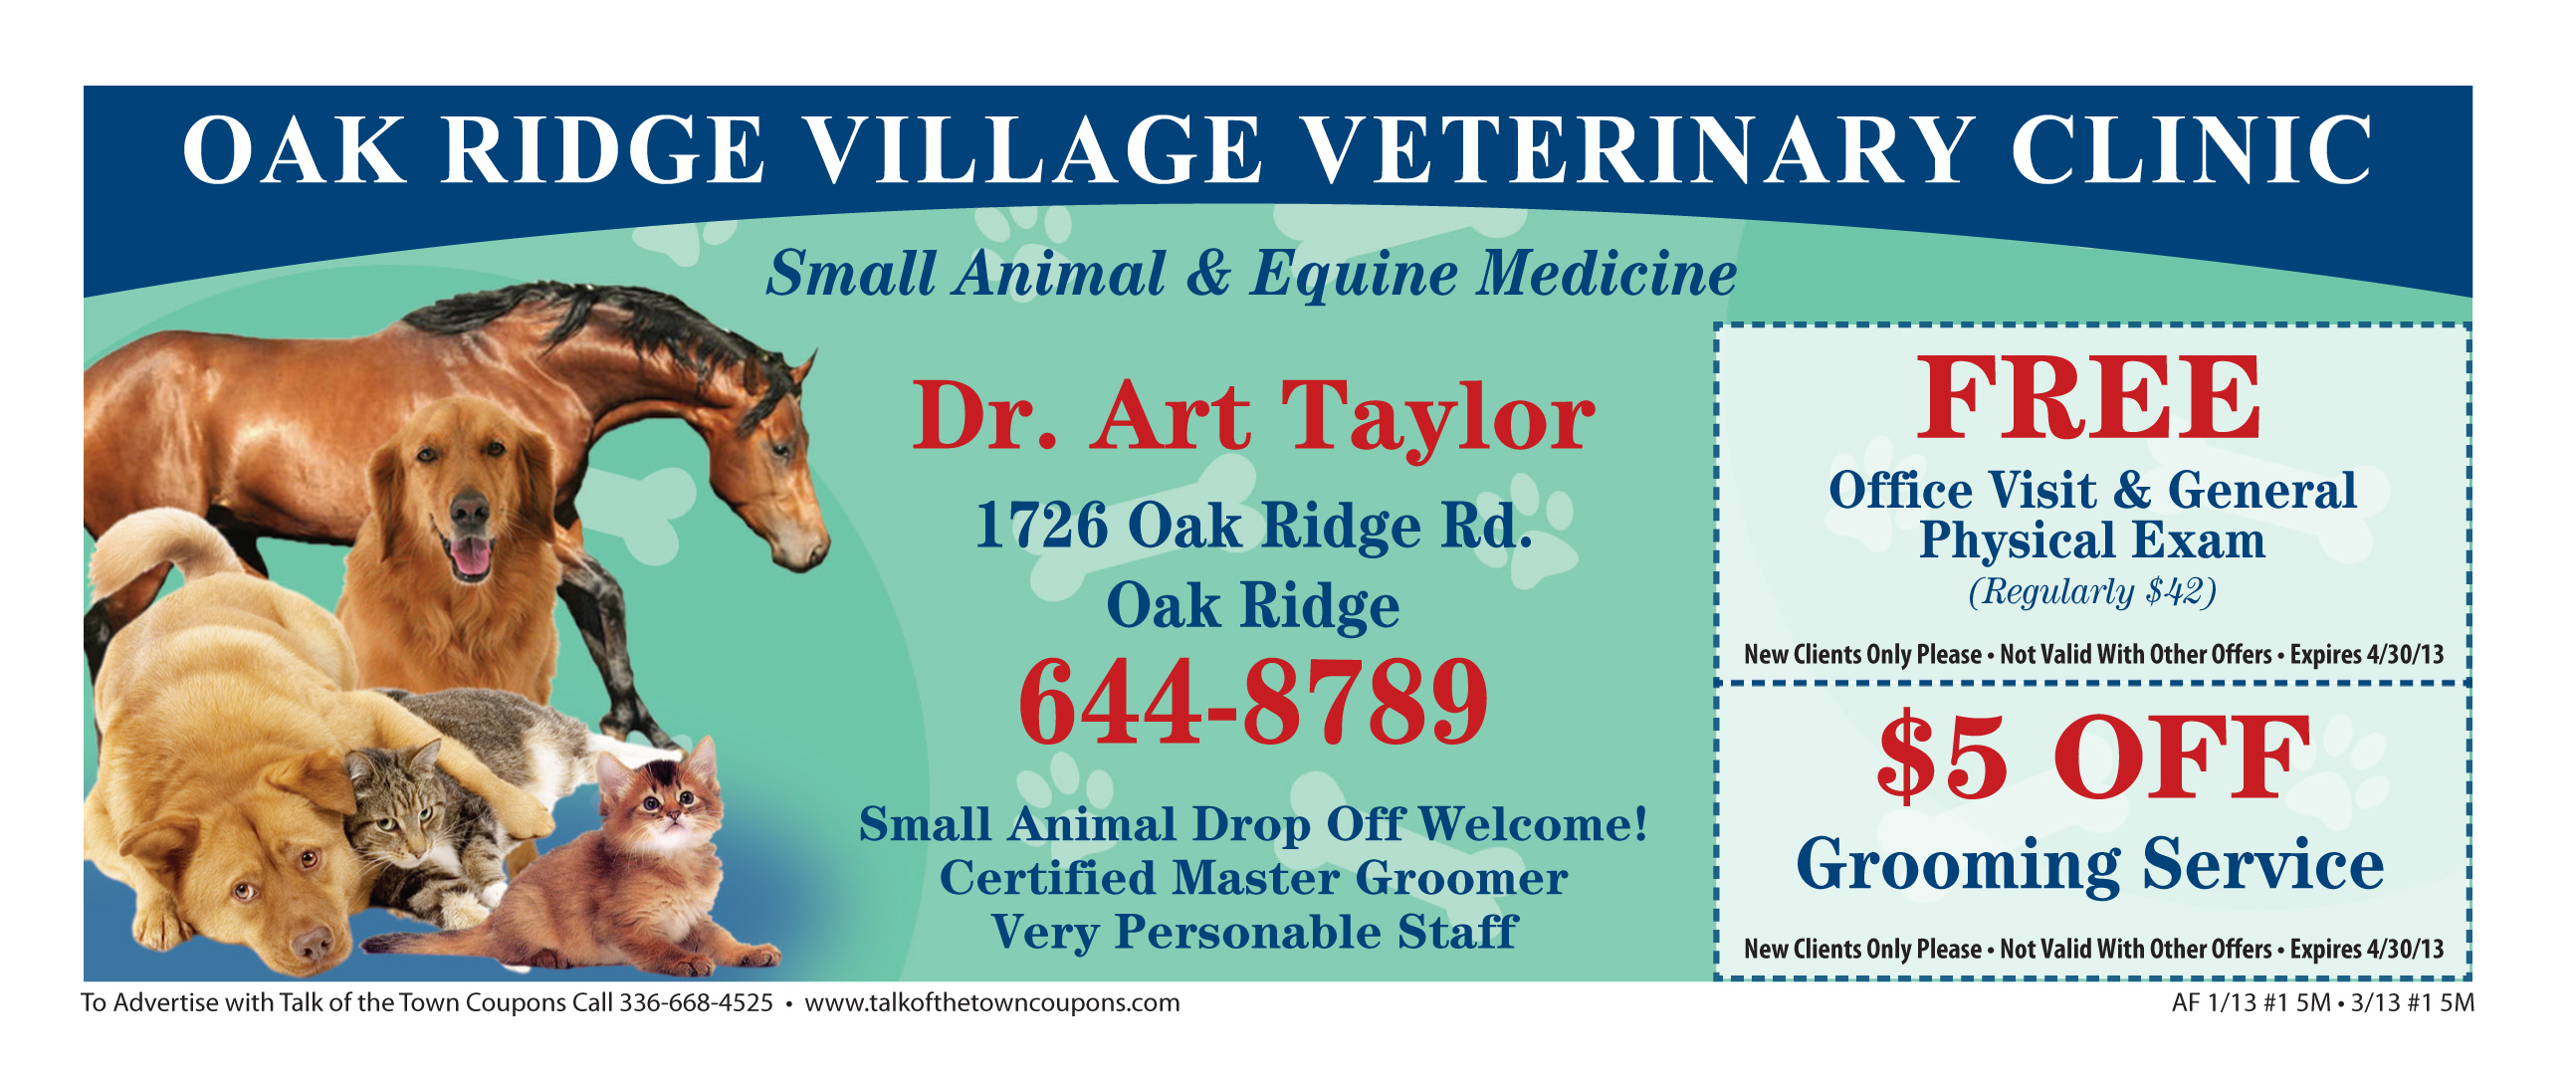 Village Vet Booklet Offer Image